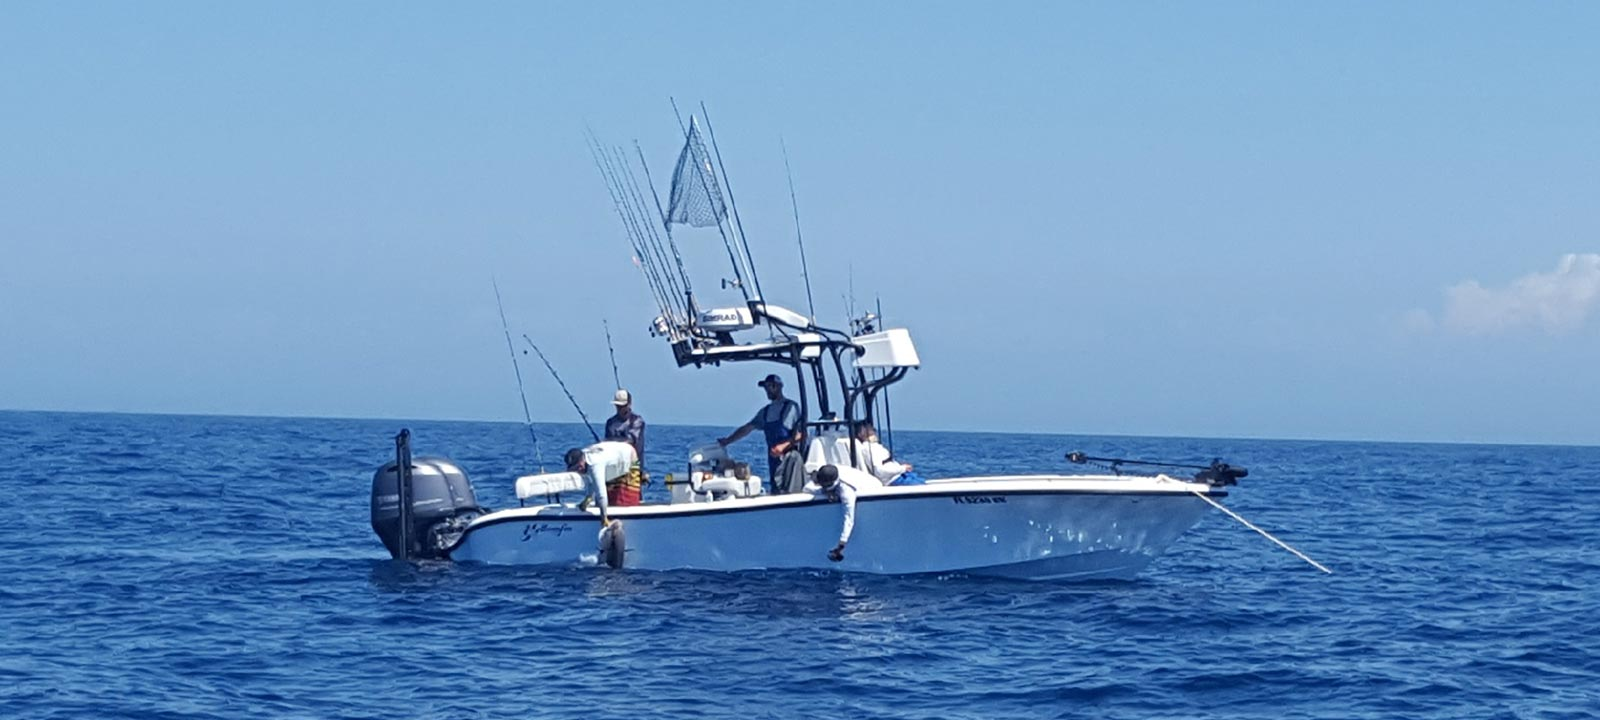 Great shot of the 26' Yellowfin in action as well pull up some blackfin tunas on an offshore fishing charter.